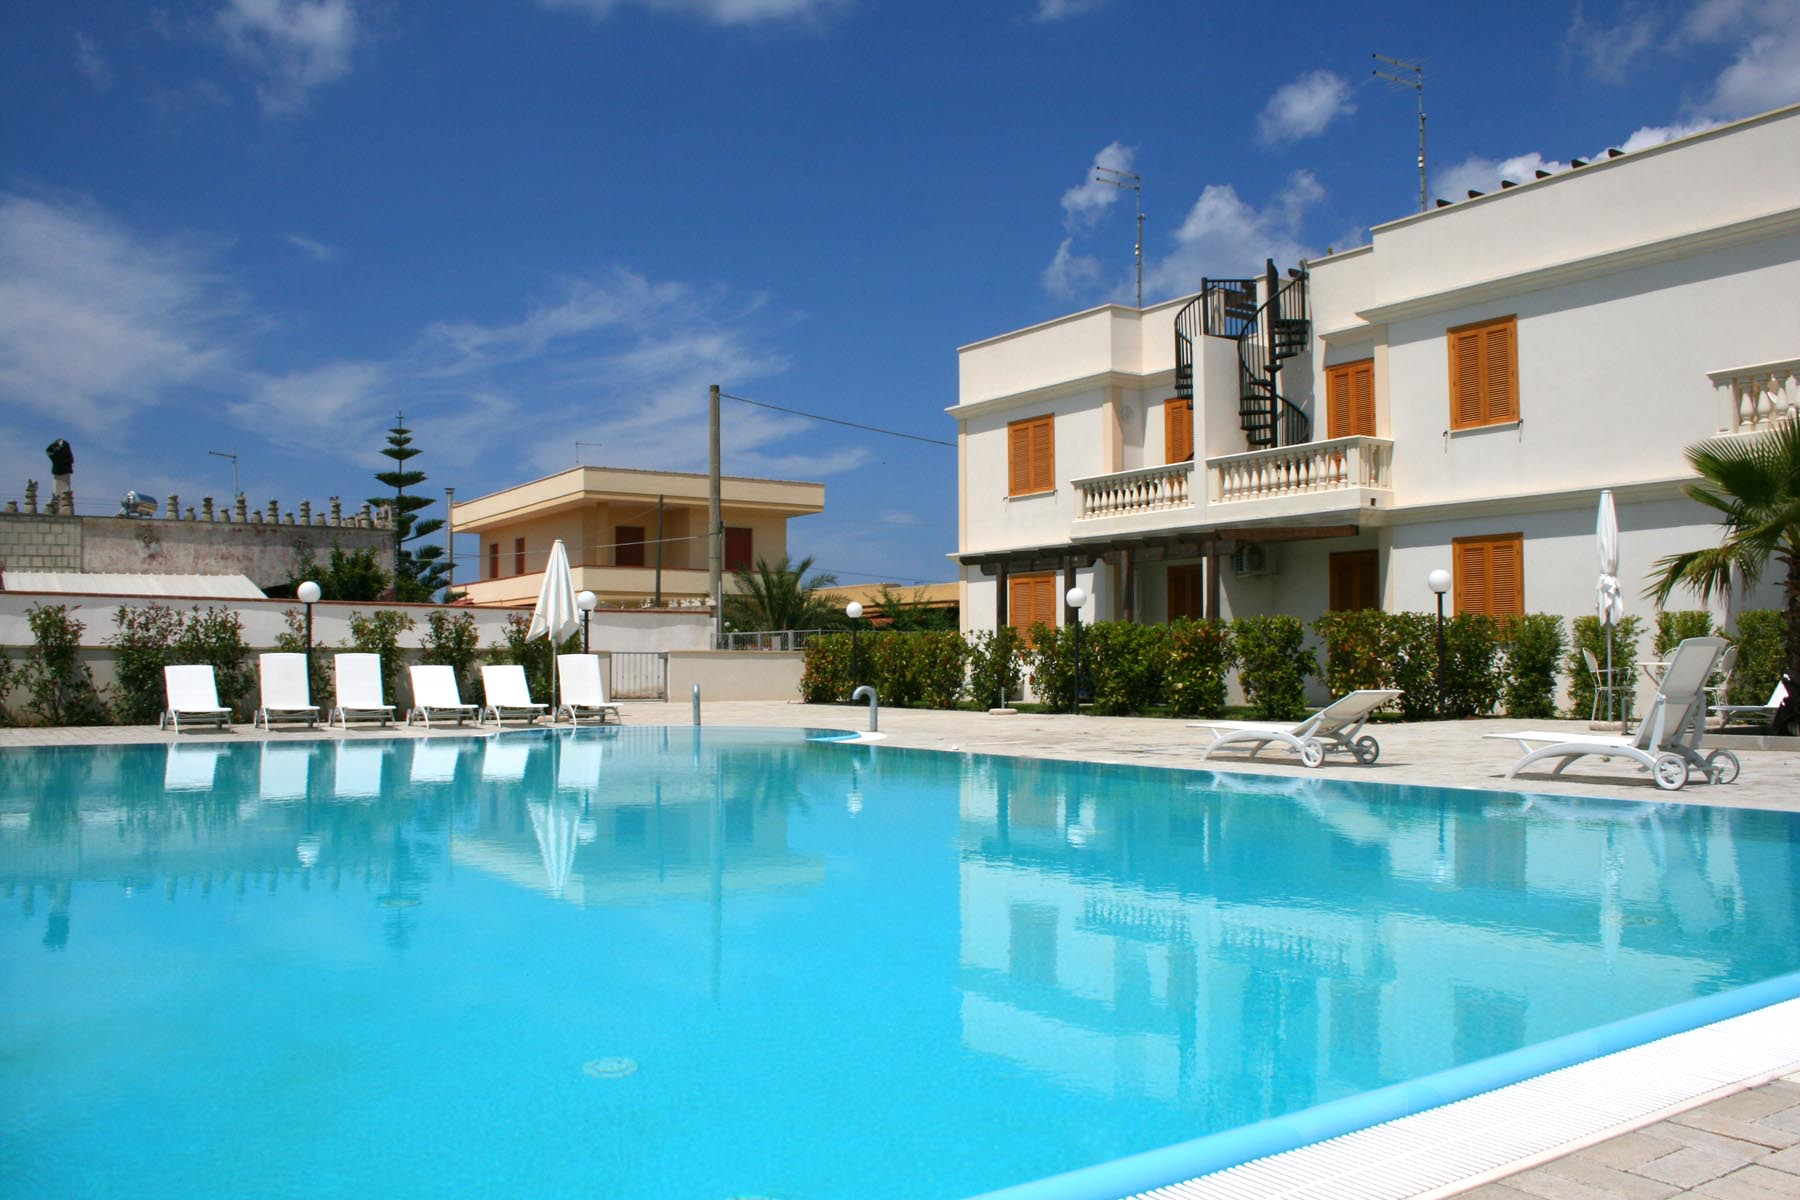 Apartment with pool for sale in puglia italy italyflavours for Pool apartments